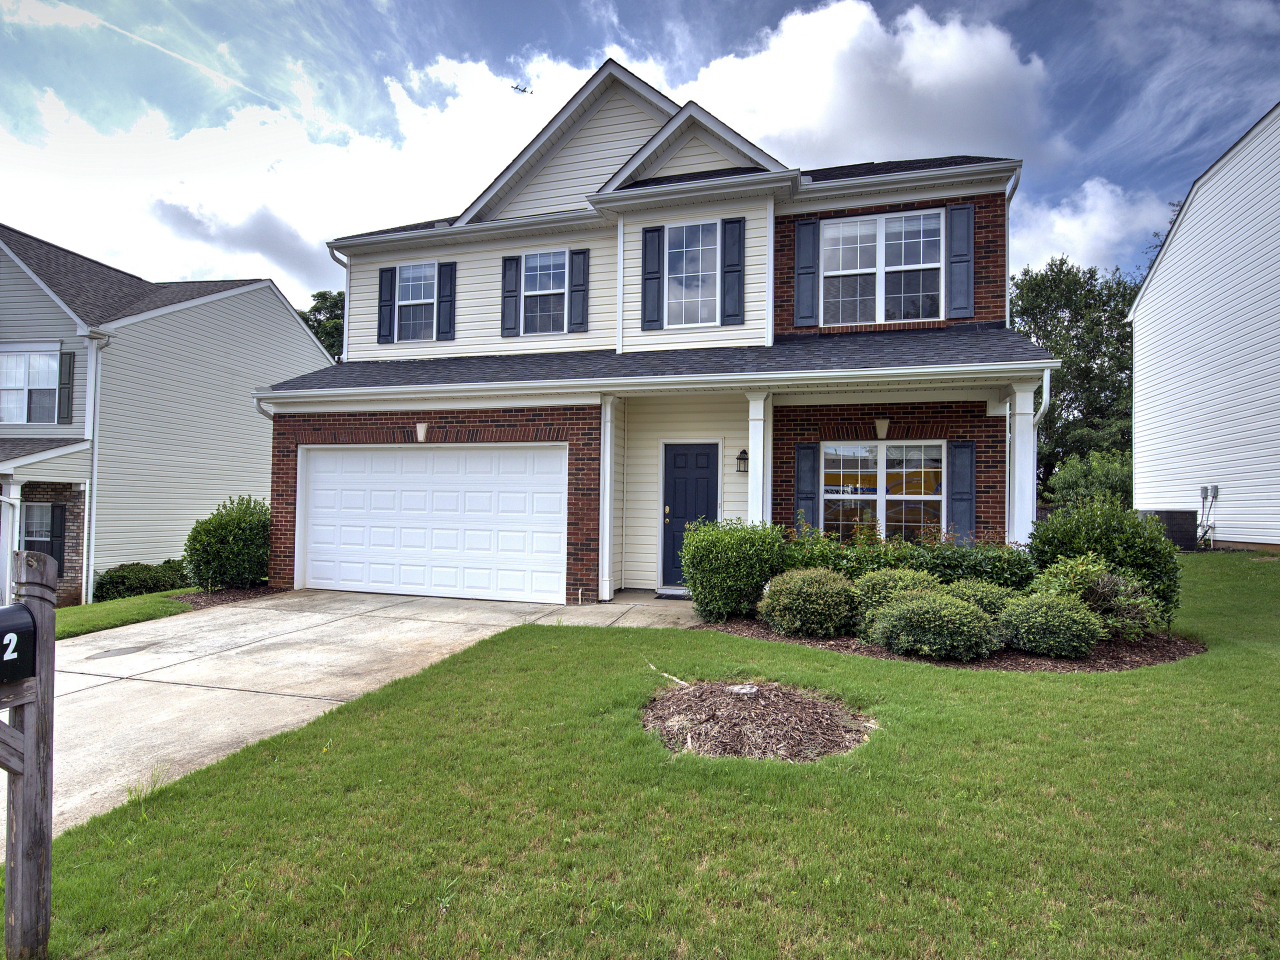 Phenomenal Greer Sc Homes For Sale 412 Chartwell Drive 29650 Download Free Architecture Designs Jebrpmadebymaigaardcom